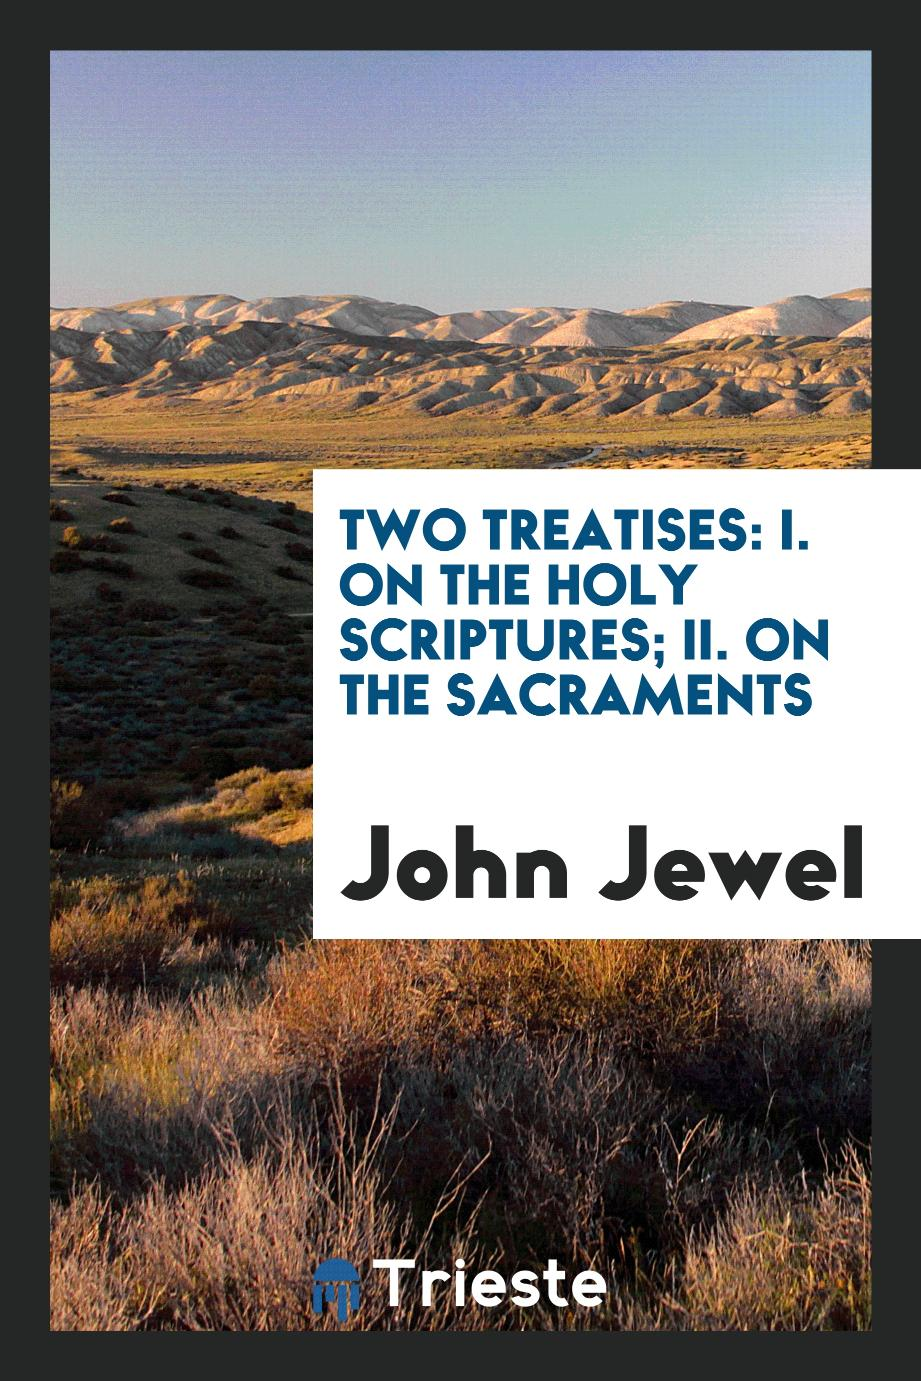 Two treatises: I. On the Holy Scriptures; II. On the sacraments